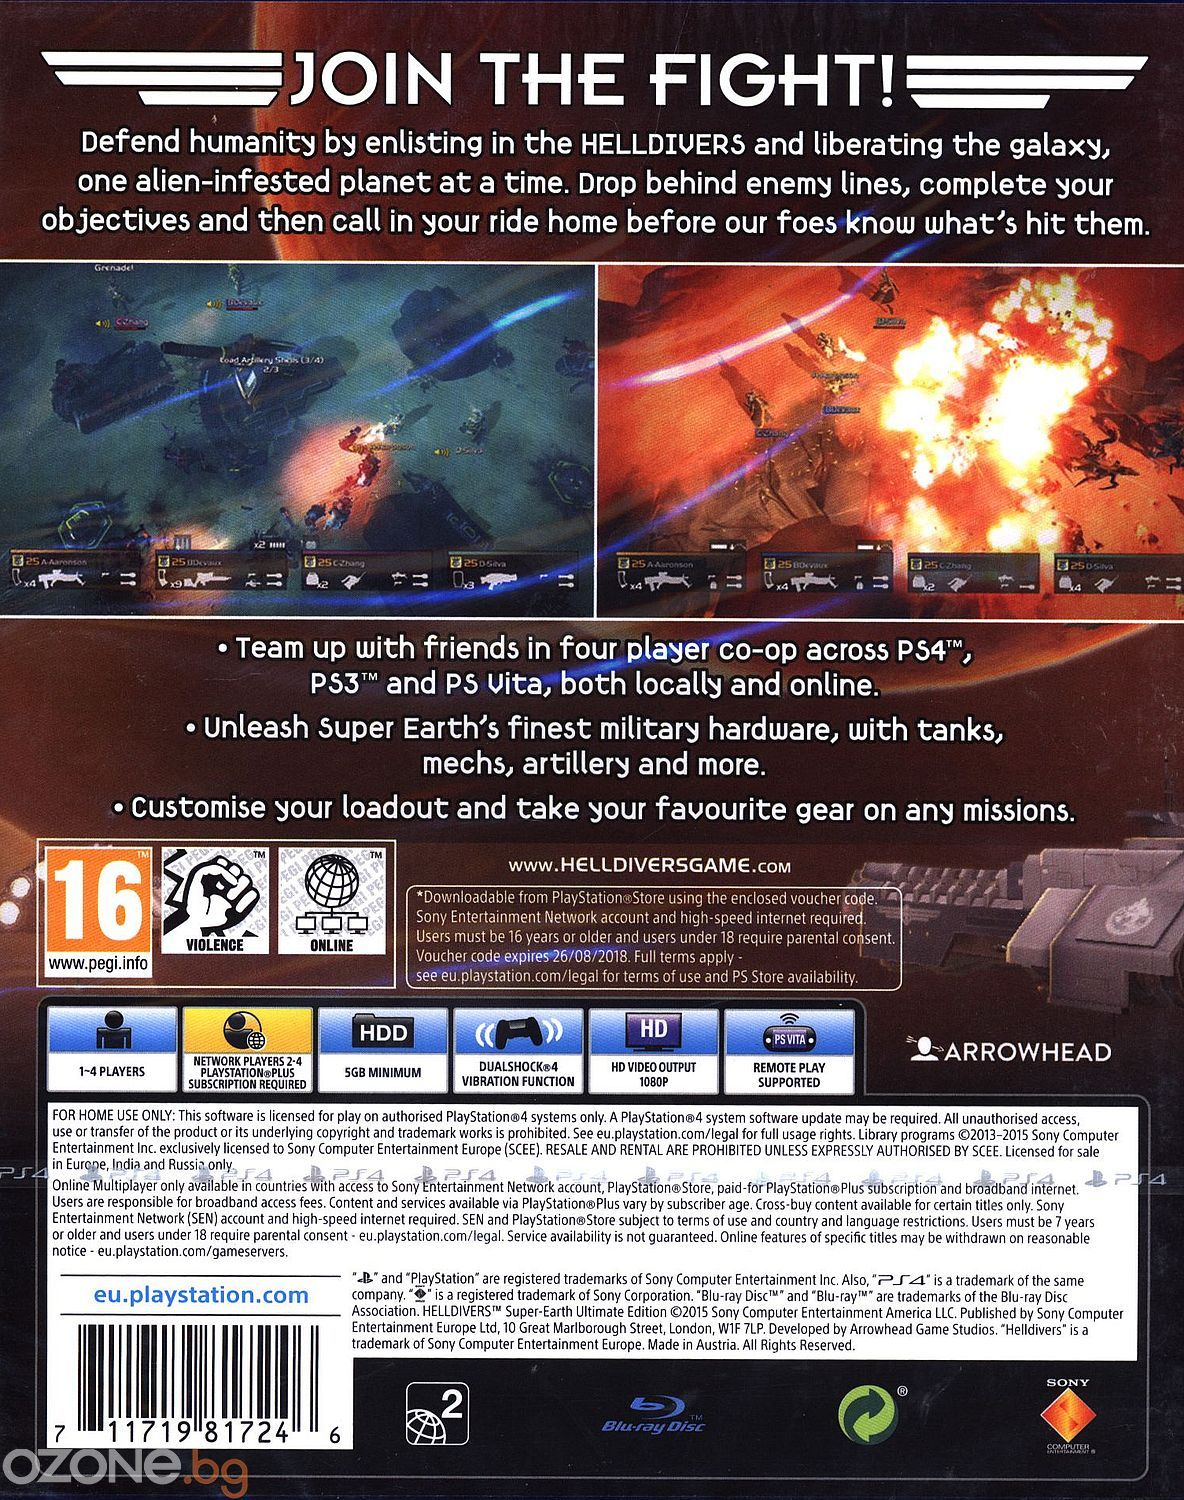 HellDivers Super-Earth Ultimate Edition (PS4) - 12